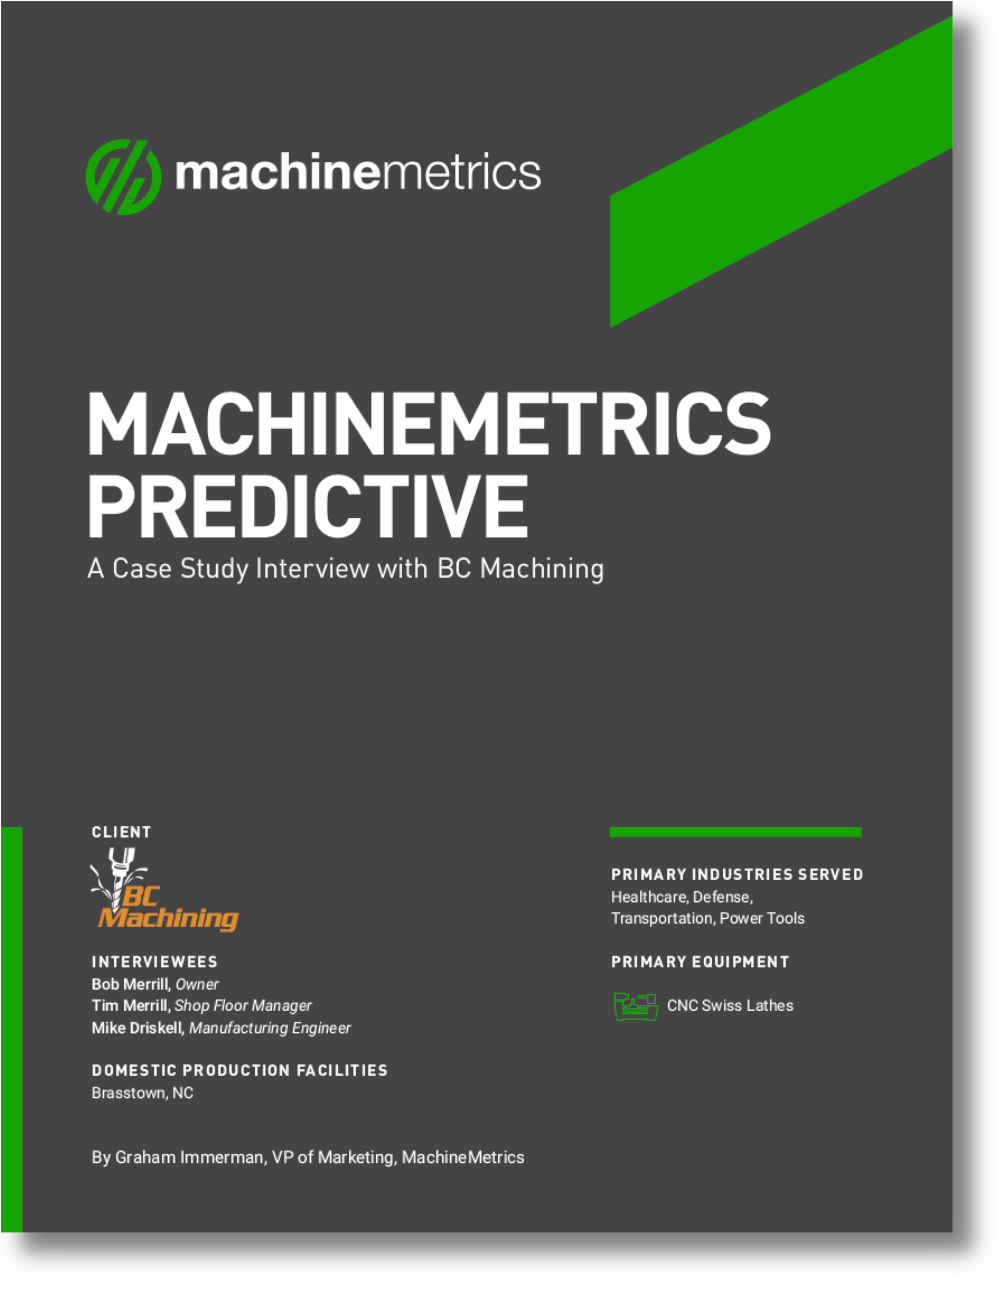 MachineMetrics Predictive Interview Case Study